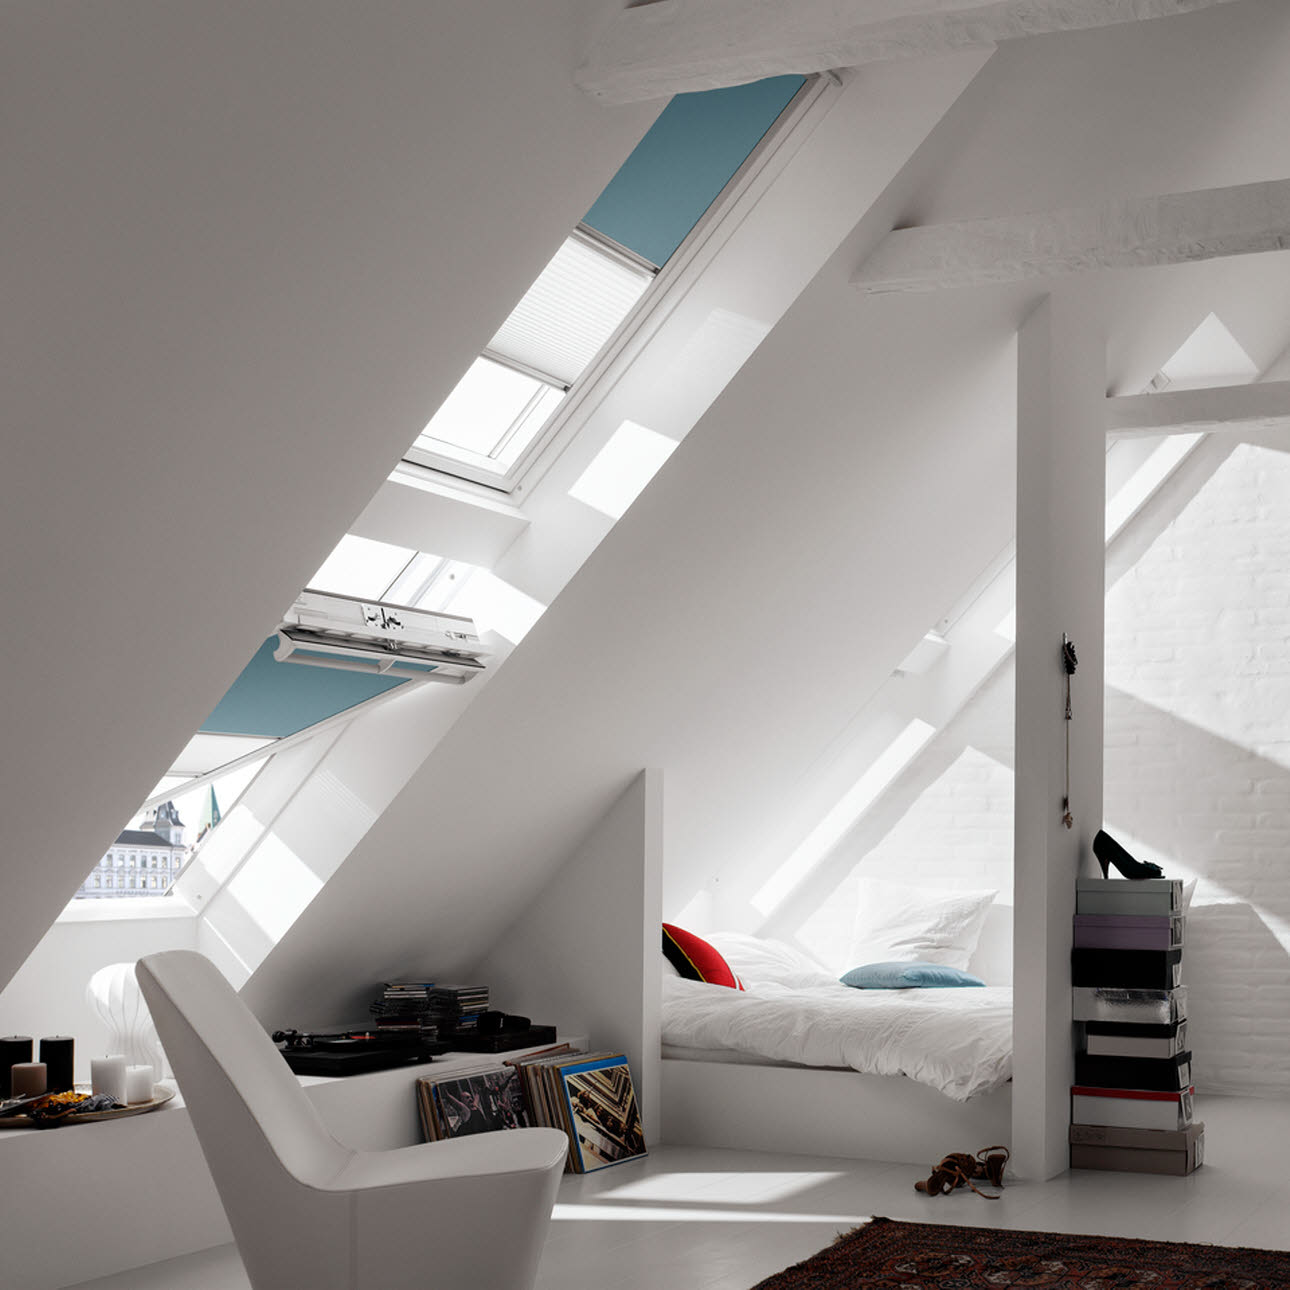 Sloping Velux bedroom windows, turquoise blinds, white bedroom